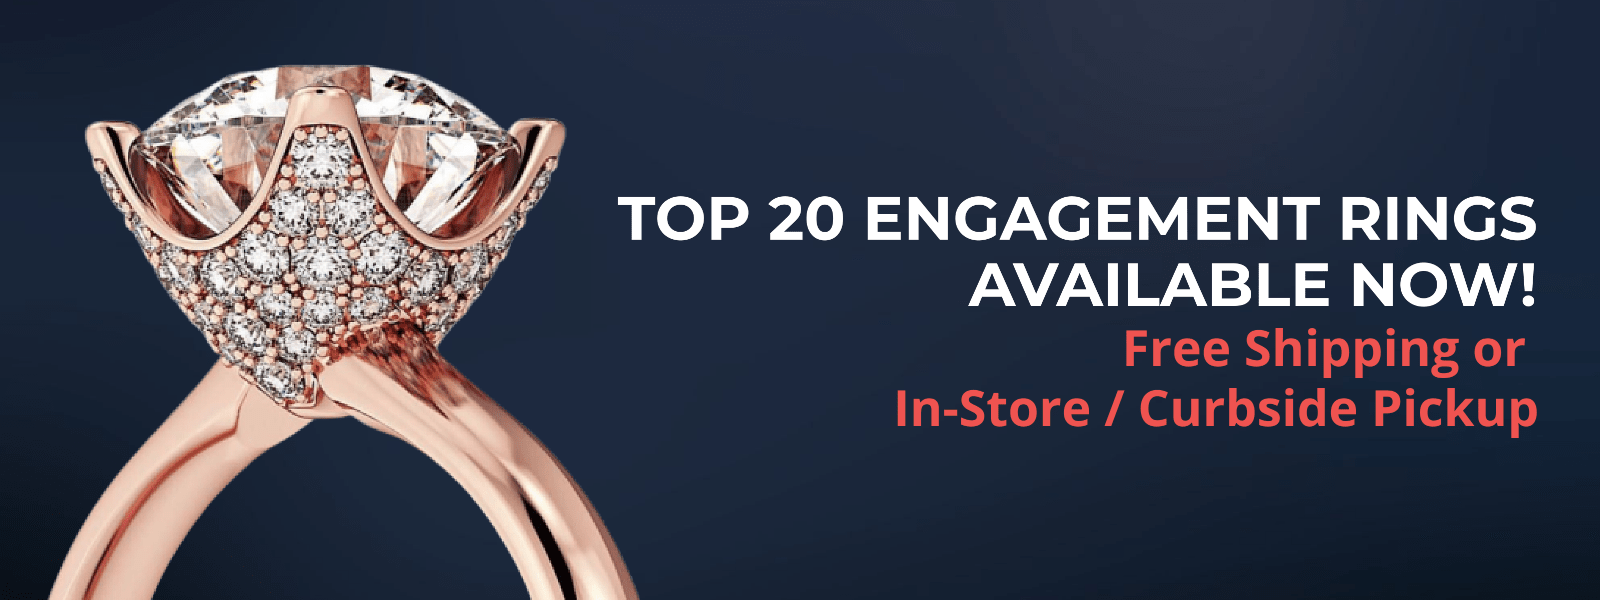 Top 20 Engagement Rings Available Now at Robert Irwin Jewelers